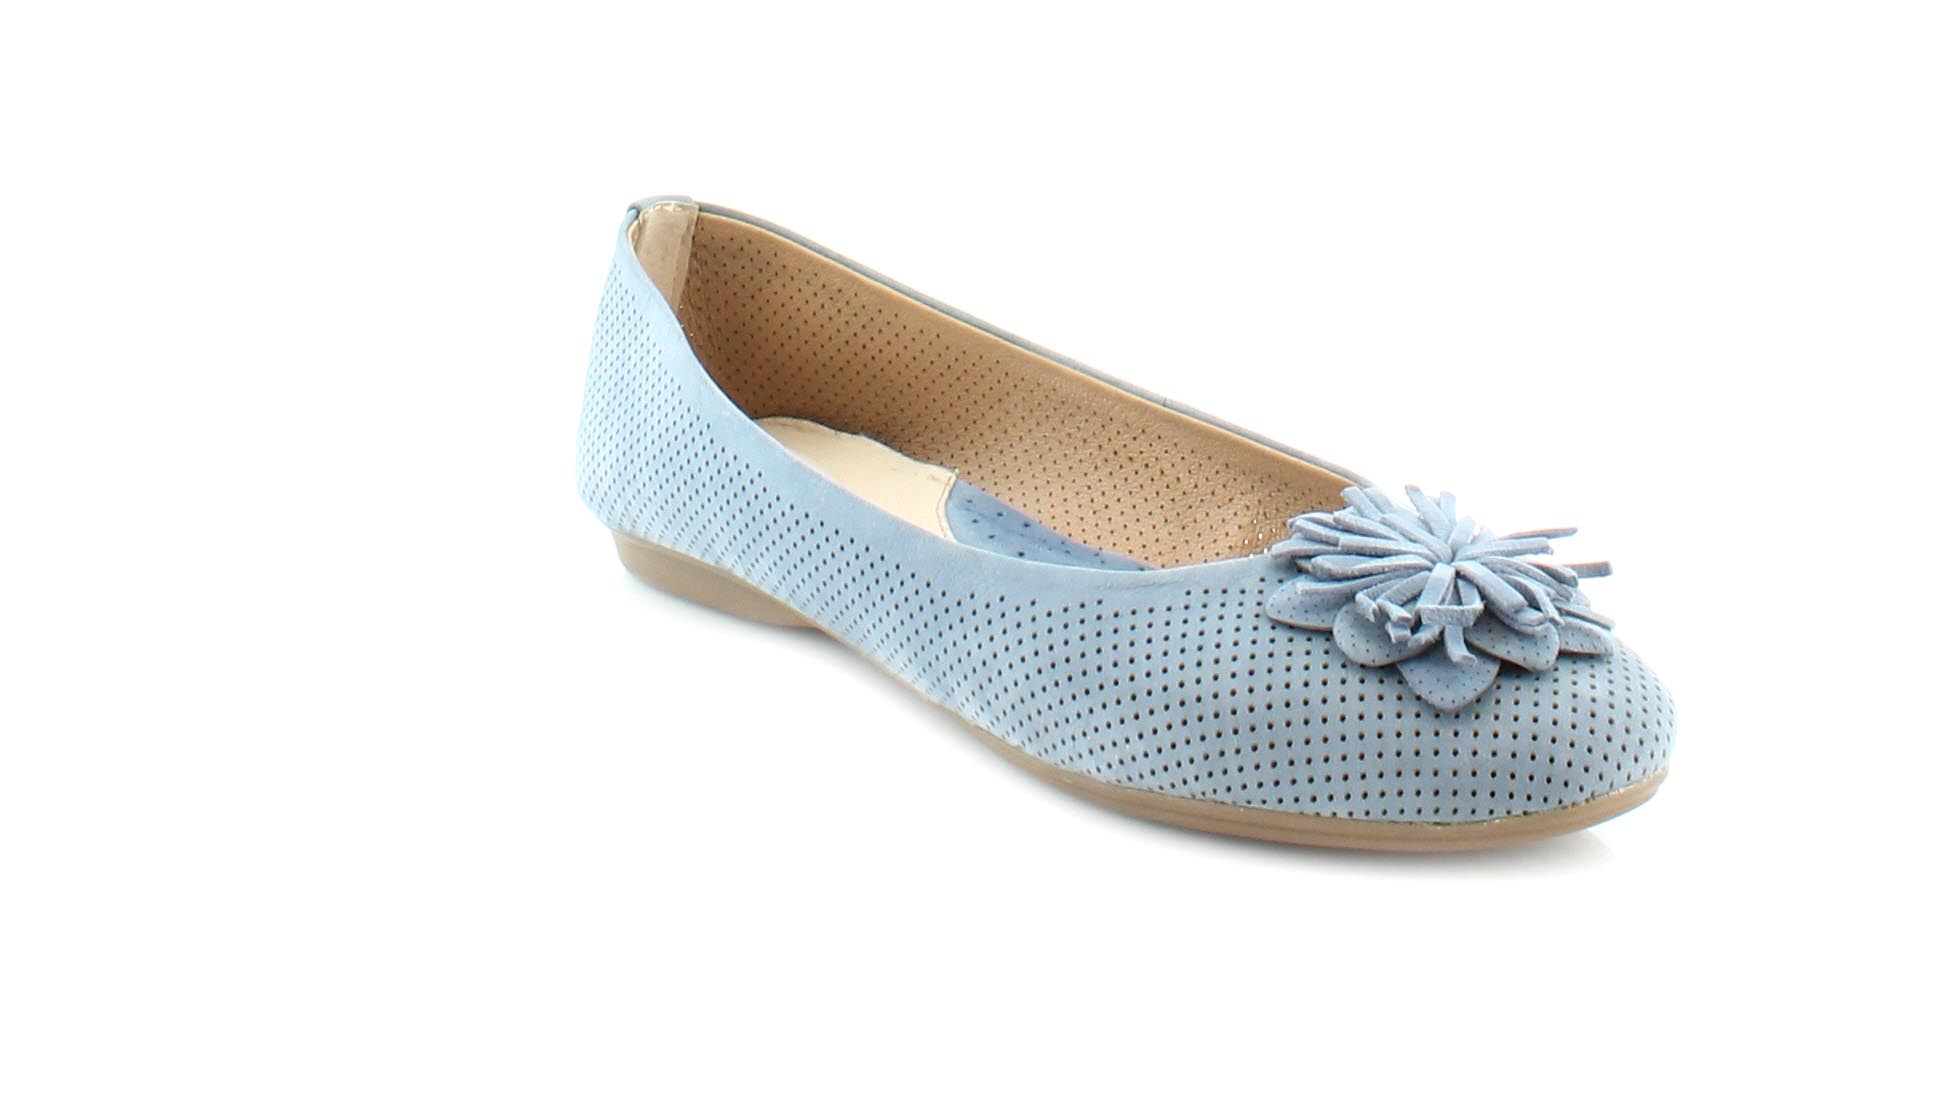 Hush Puppies Cala Atkin IIV Women's Flats & Oxfords by